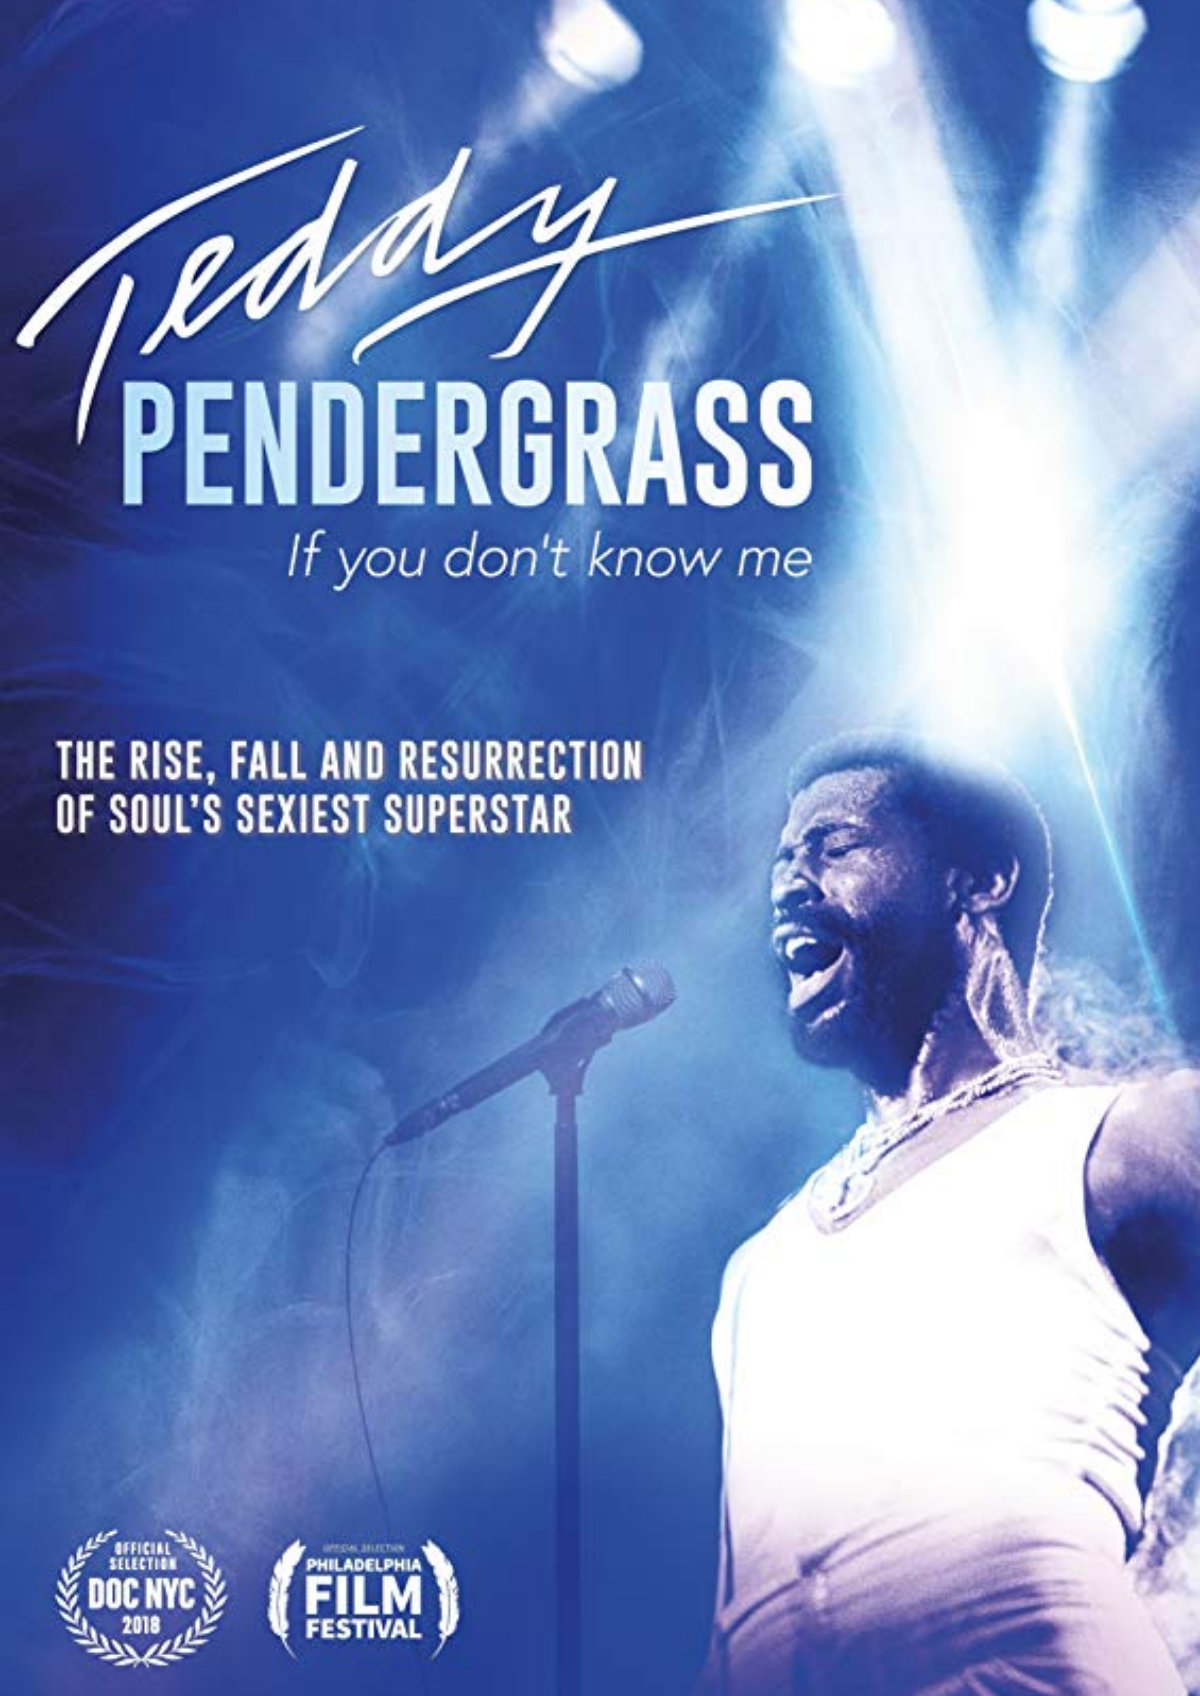 'Teddy Pendergrass: If You Don't Know Me' movie poster